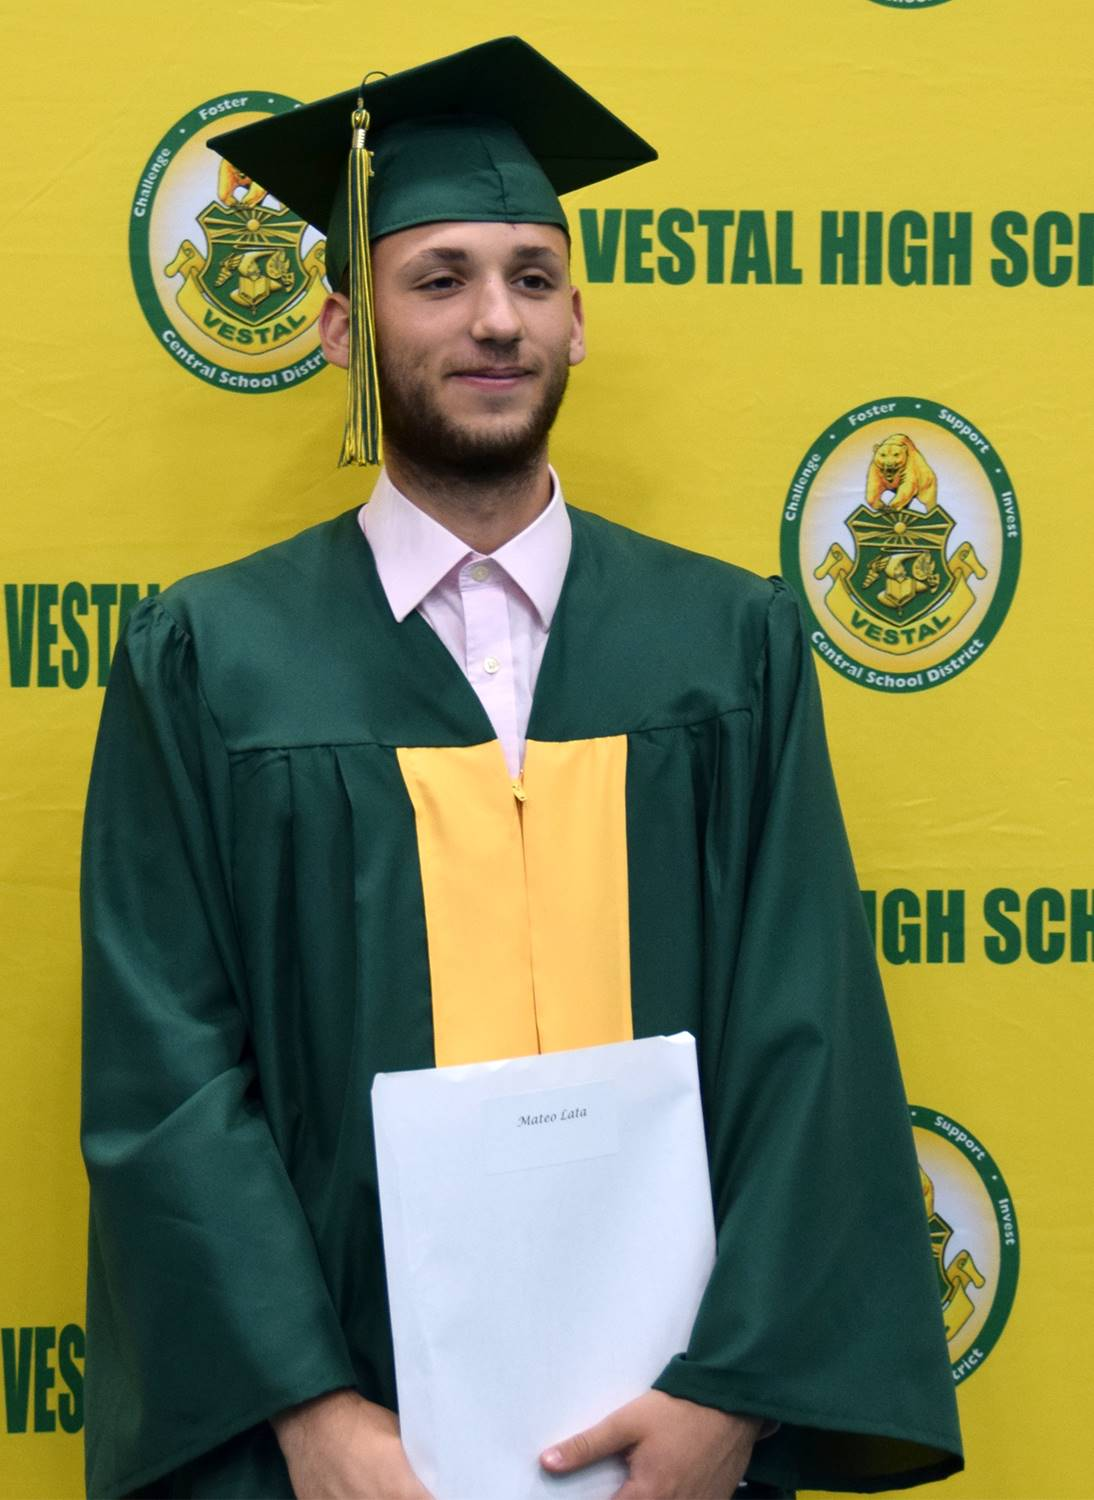 A Vestal High School graduate stands in front of the yellow and green wall holding his diploma durin